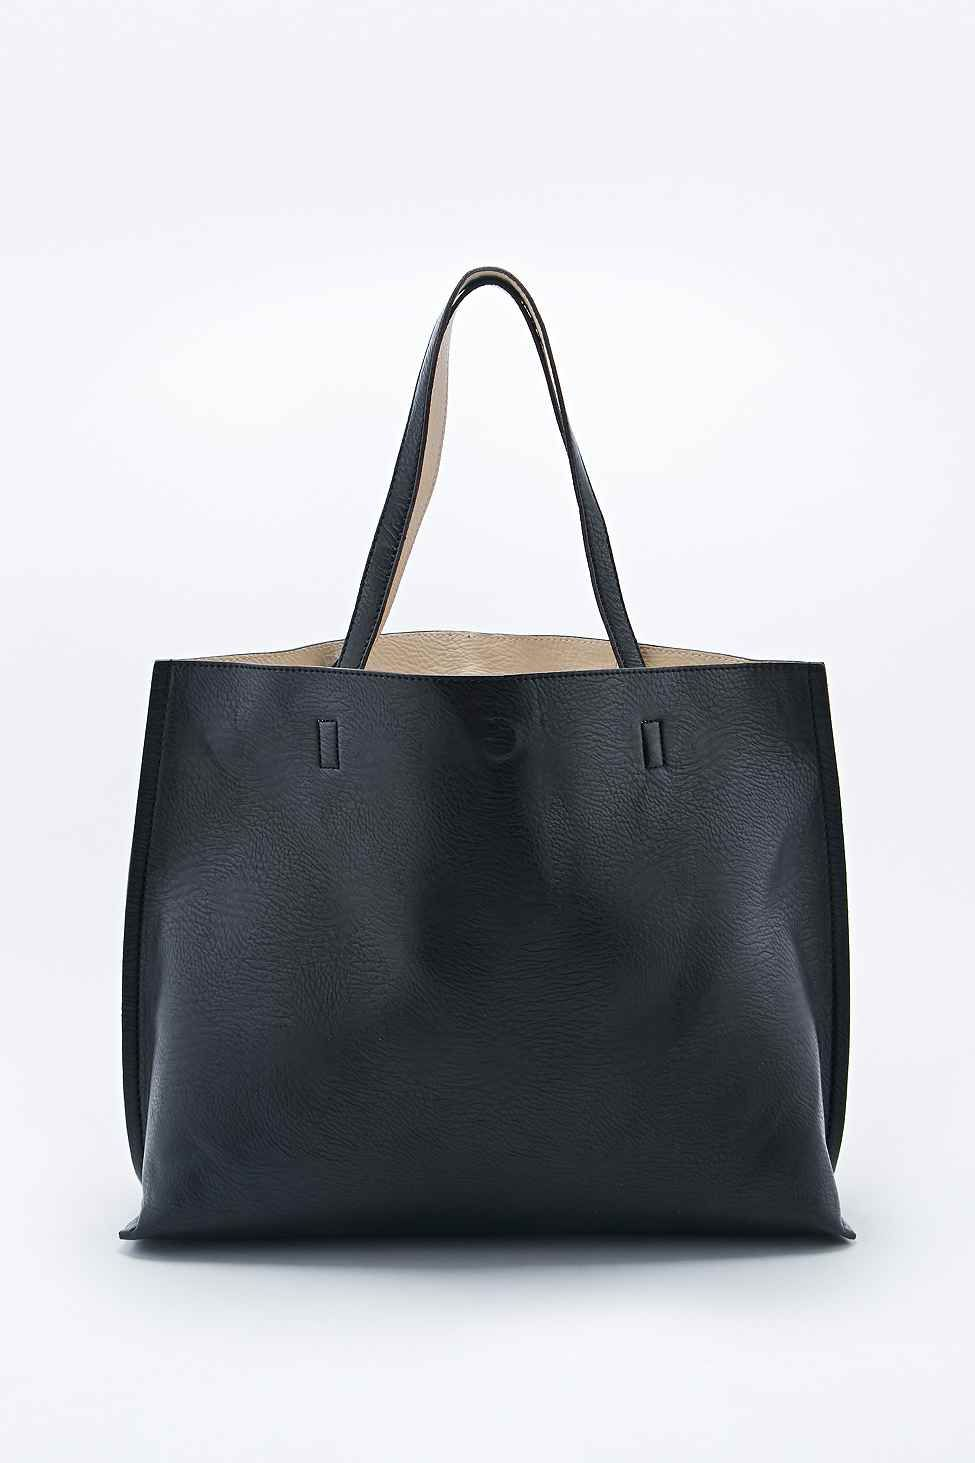 0d6d88a6eccf Reversible Vegan Leather Oversized Tote Bag in Black and Ivory - Urban  Outfitters